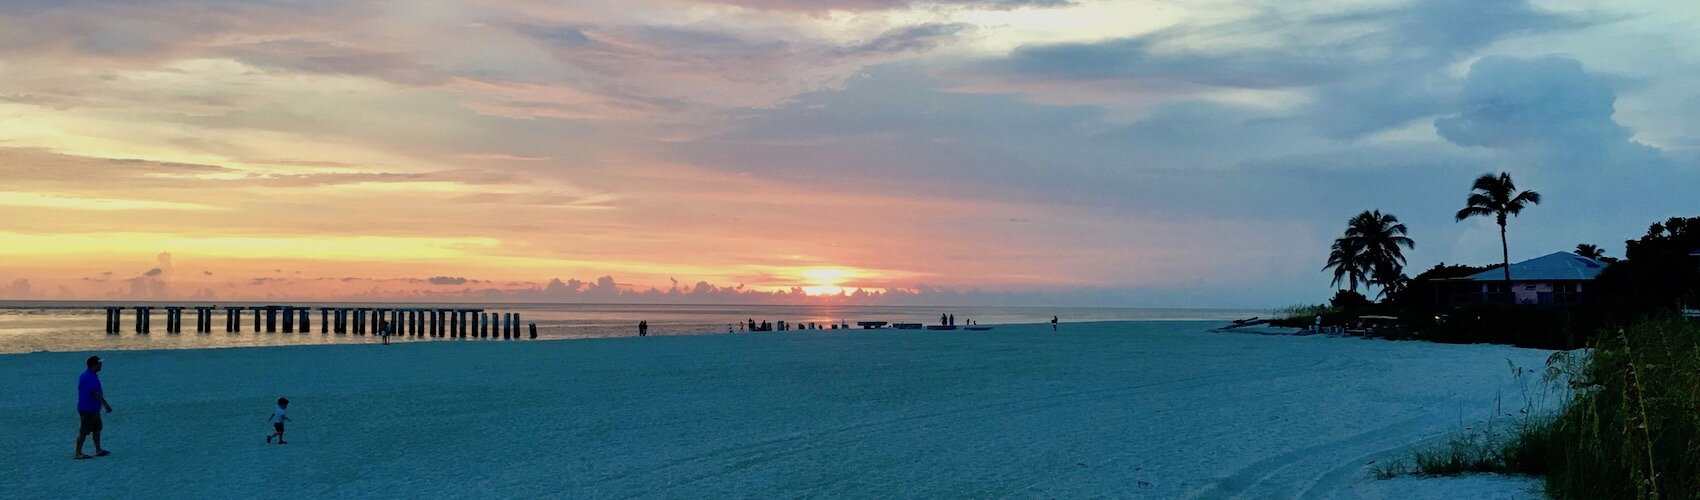 Sunset at Gasparilla Island State Park, July 2019